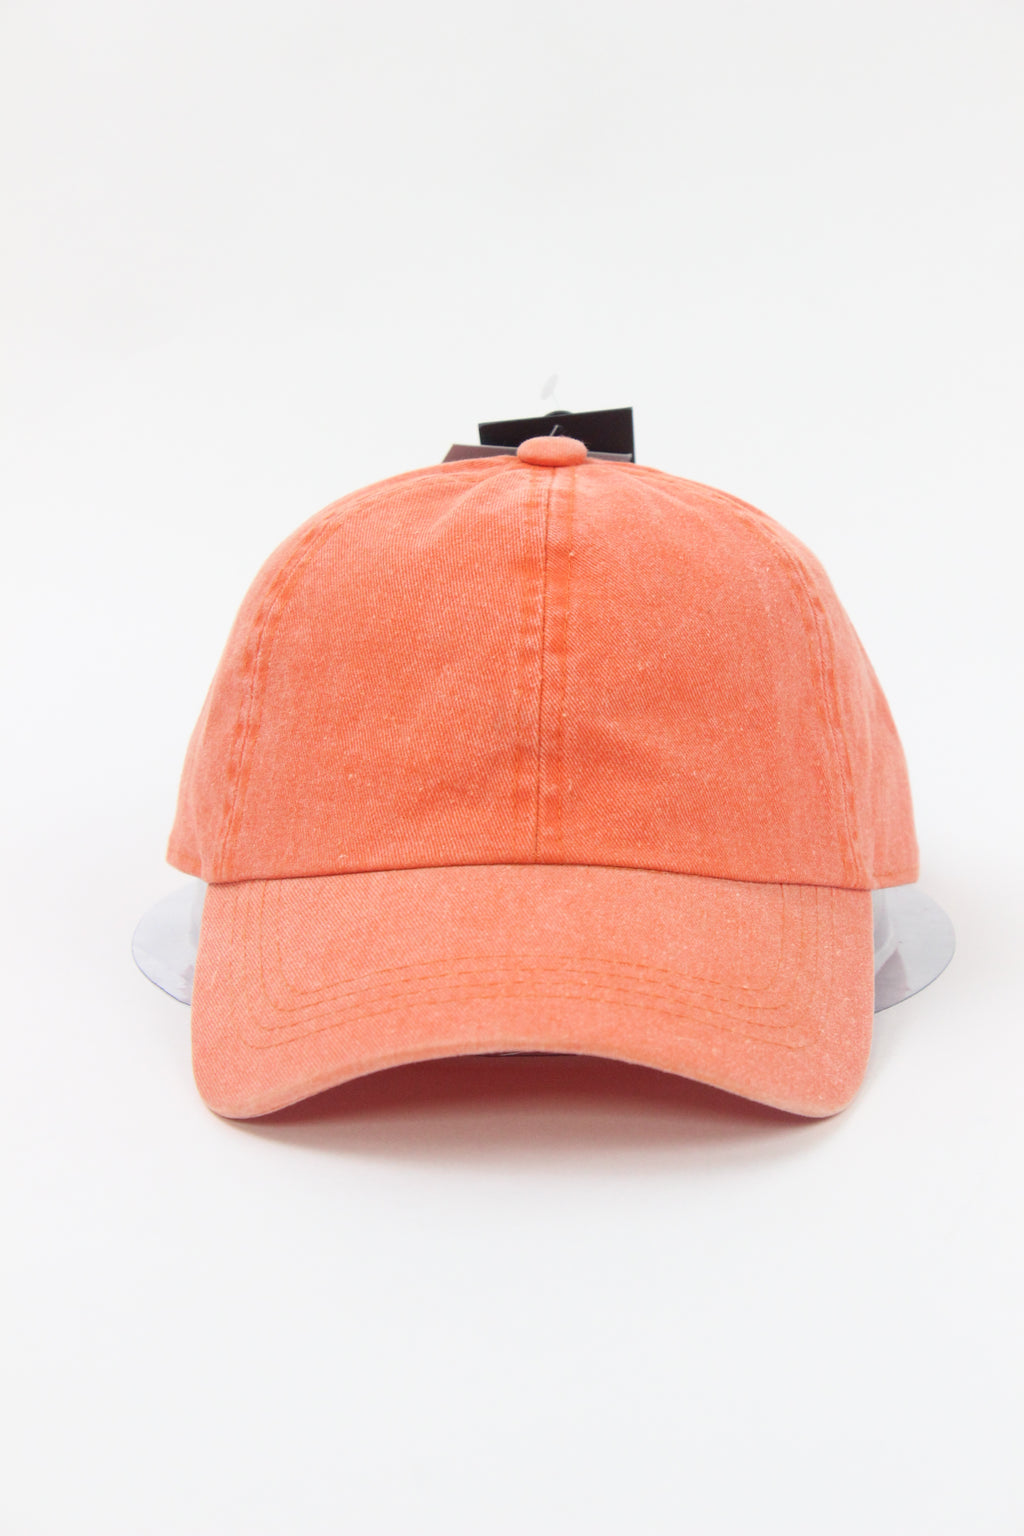 GWCAP18660 - Washed Twill 6 Panel Baseball Cap with Adjustable Velcro Closure - David and Young Fashion Accessories